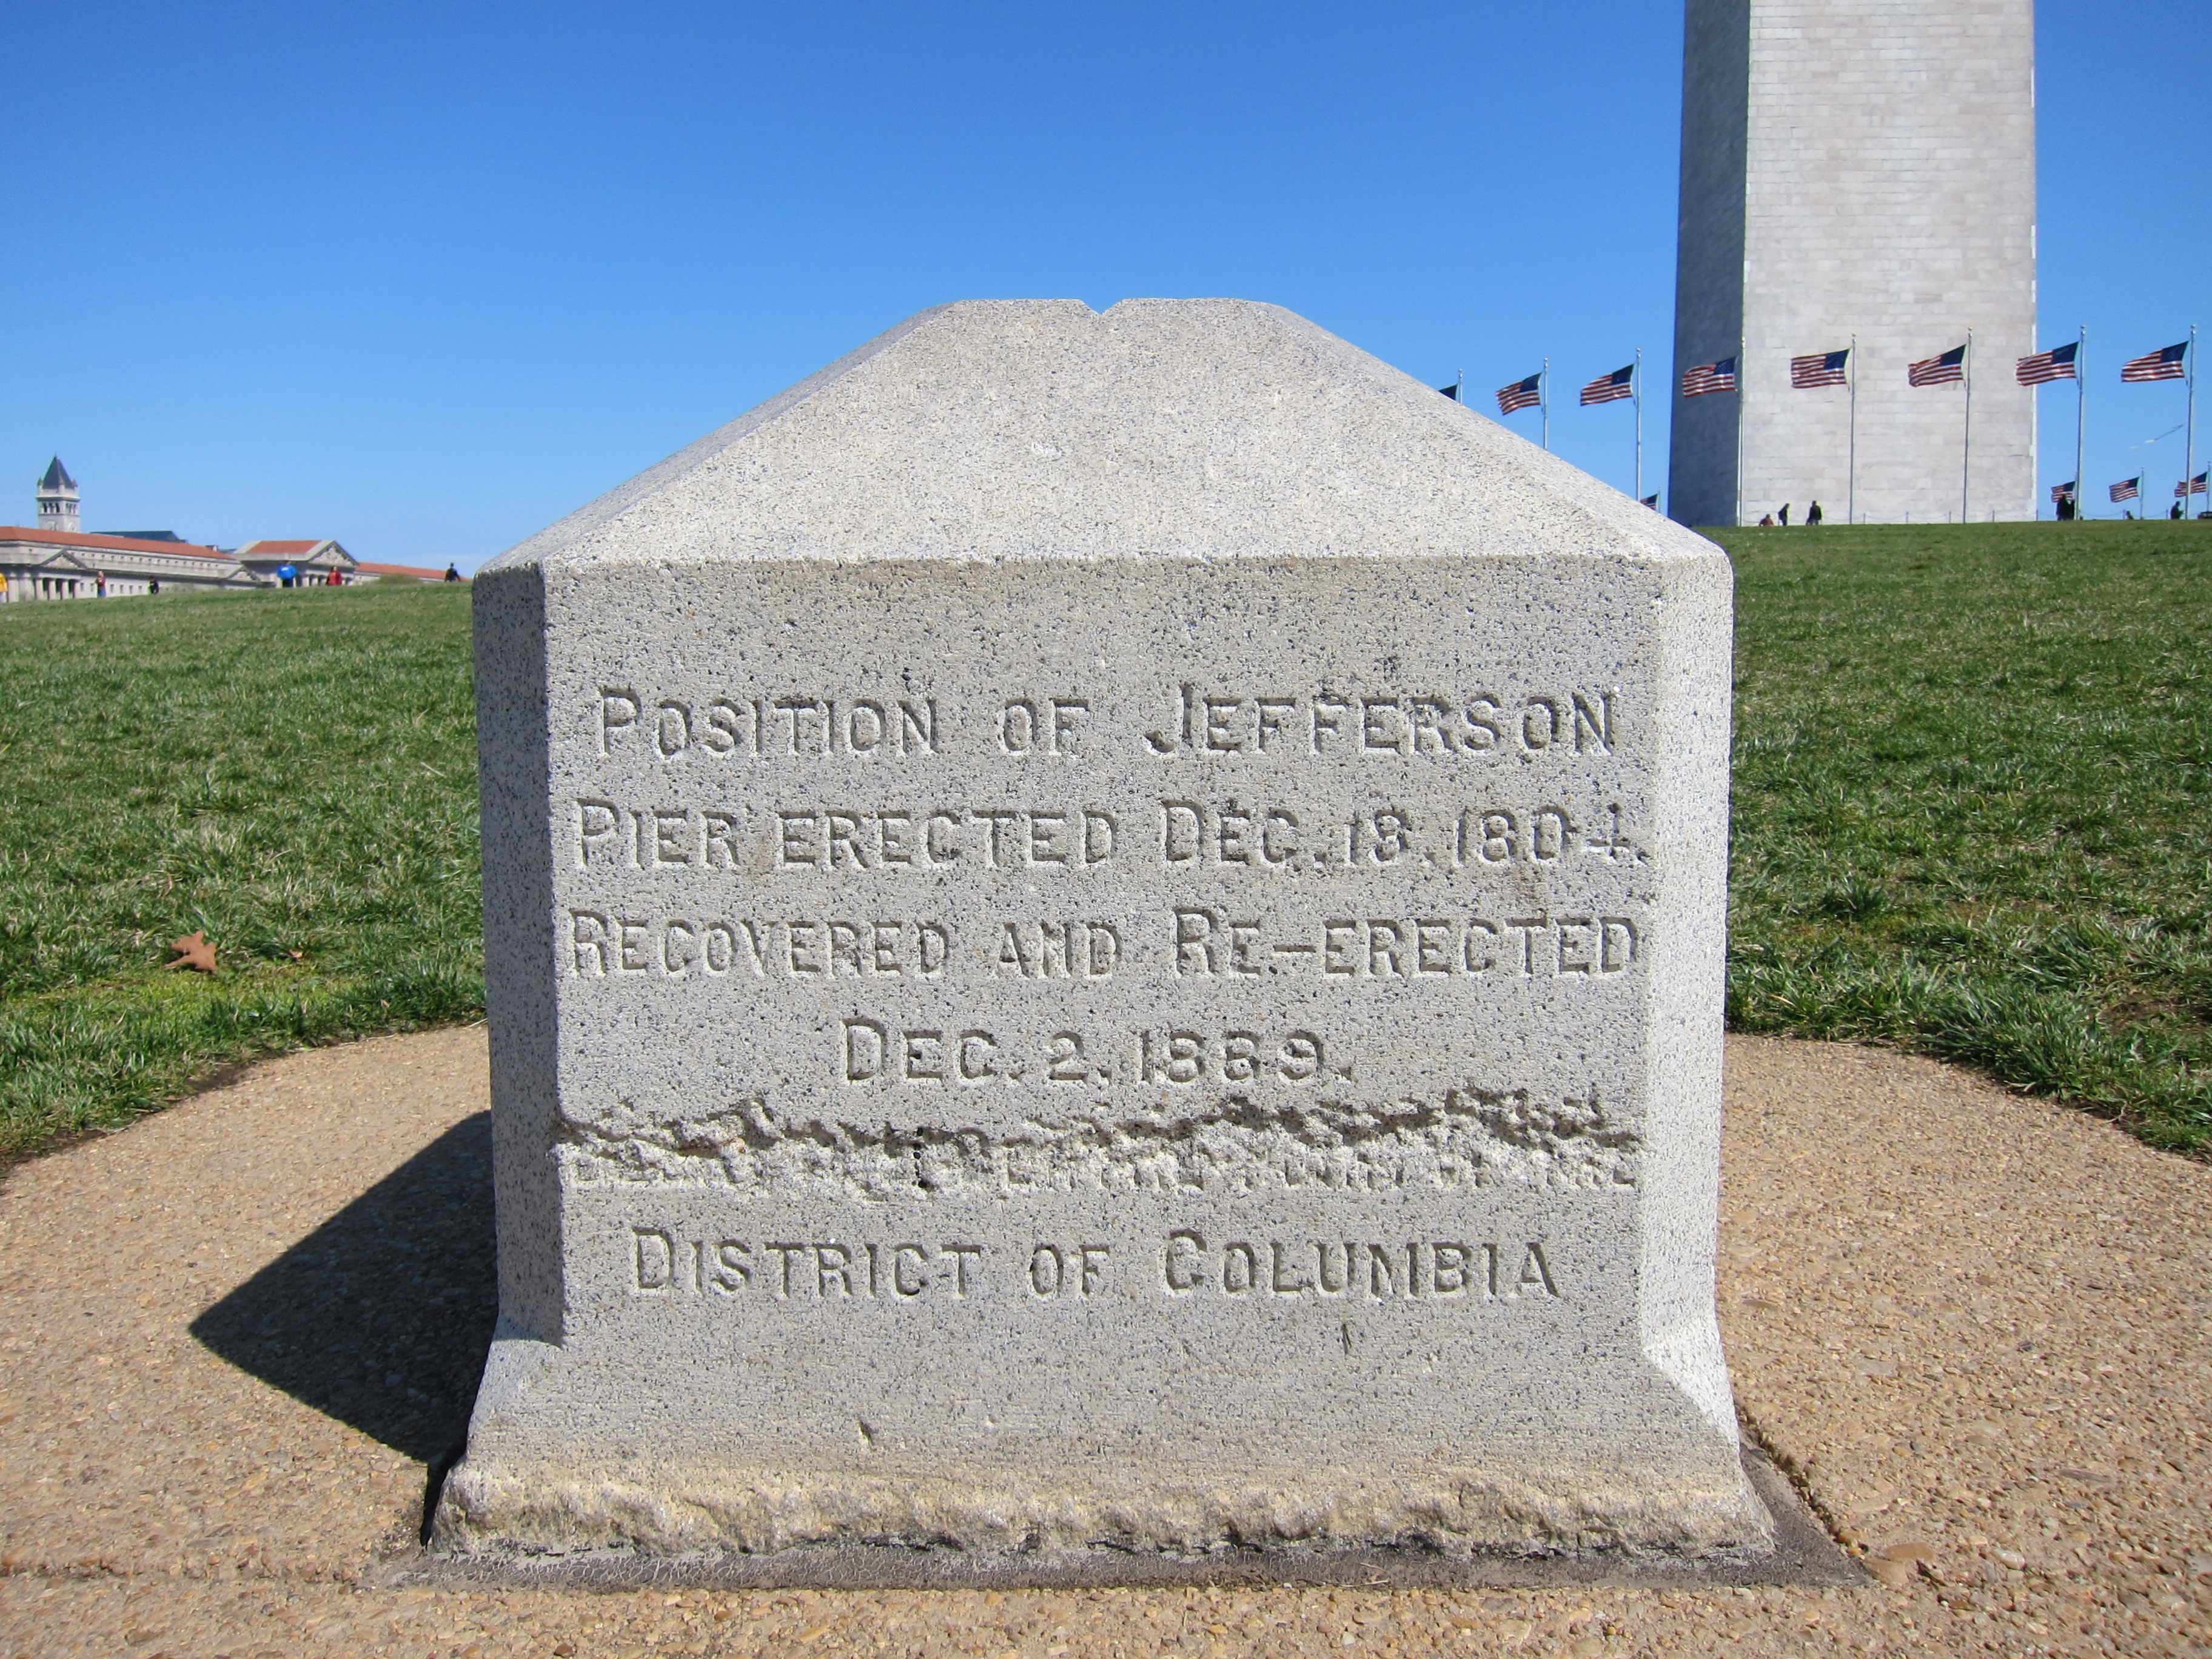 West side of Jefferson Pier with Washington Monument in background